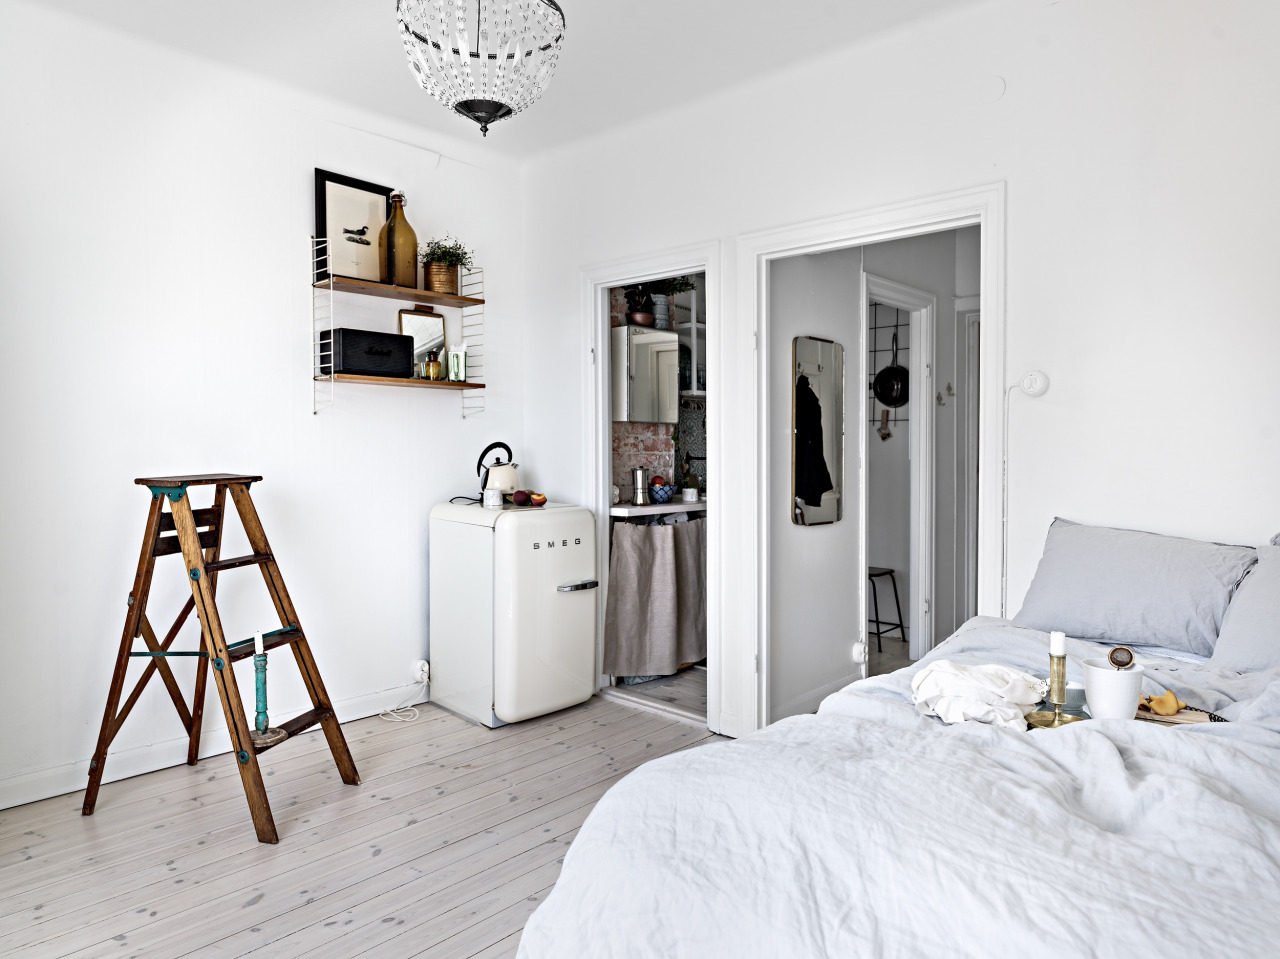 Another dreamy tiny studio apartment daily dream decor for Tiny studio apartment